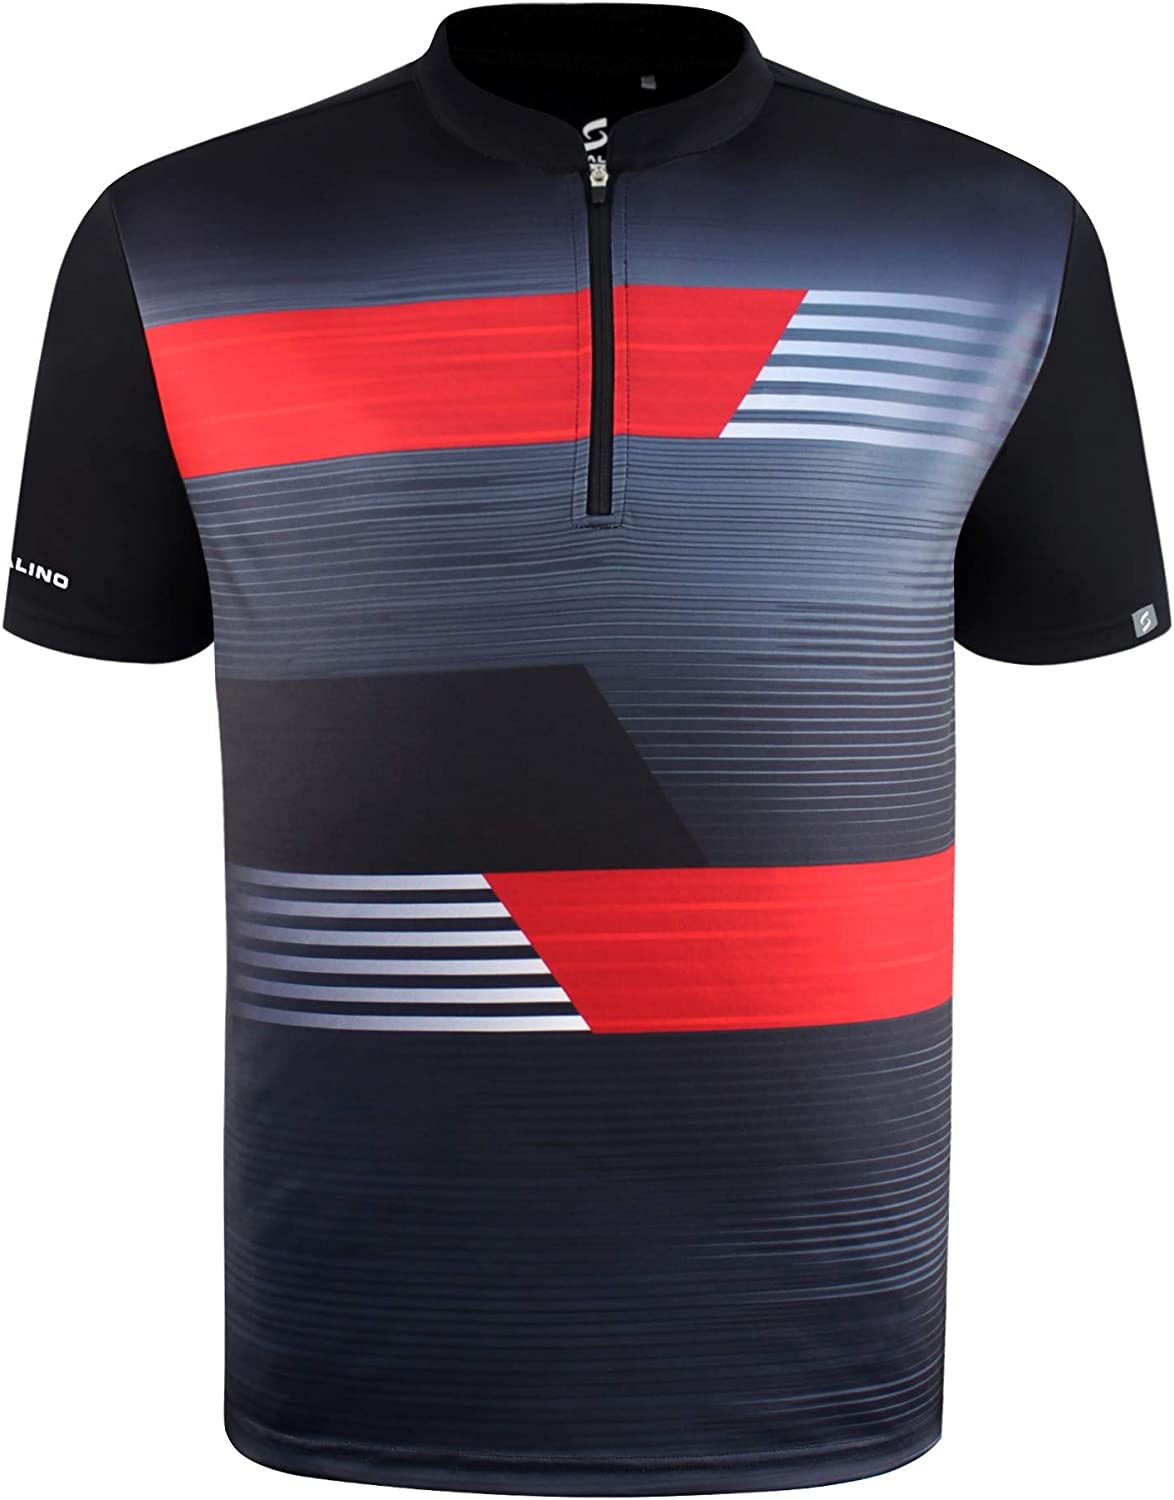 SAVALINO Men's Bowling Sublimation Printed Jersey, Material Wicks Sweat & Dries Fast, Size S-5XL